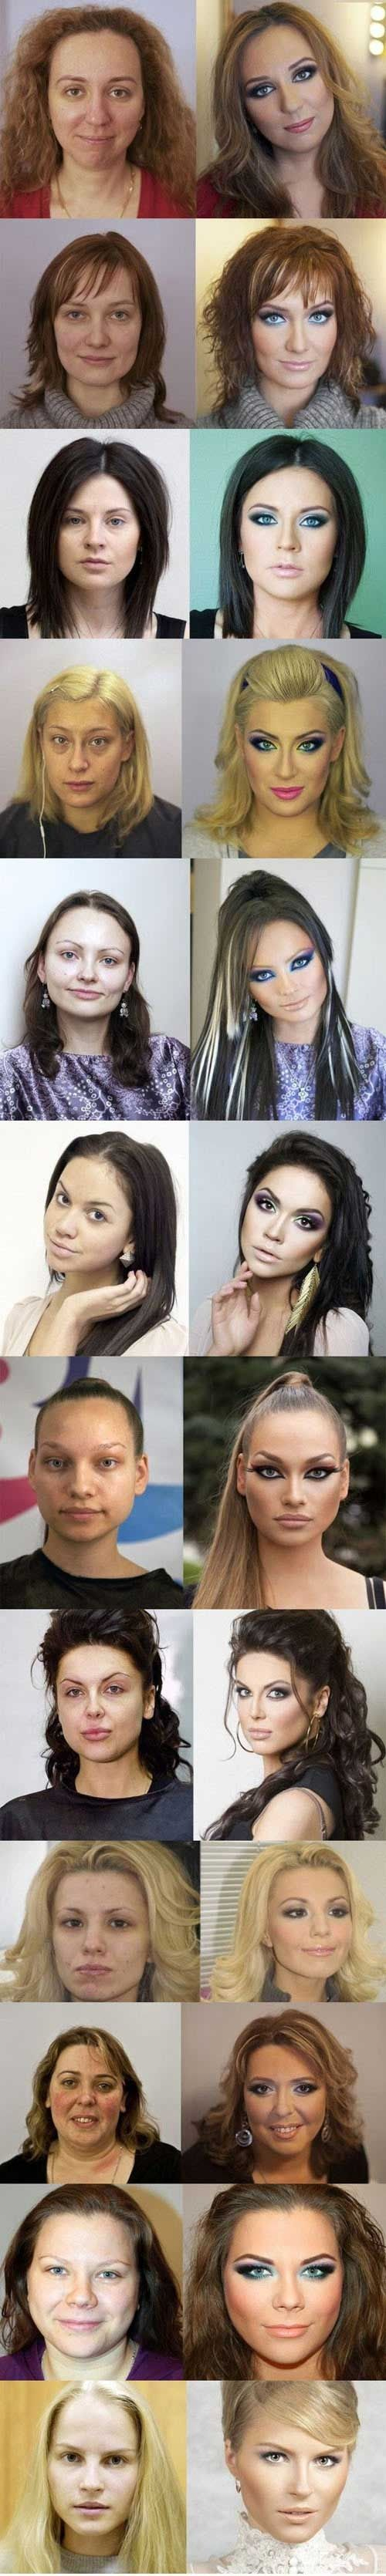 This is sad, you can make a woman look beautiful without making her look like a drag queen....most of these women look better in the before pictures. I've been guilty of doing this to myself but I don't make clients look like this